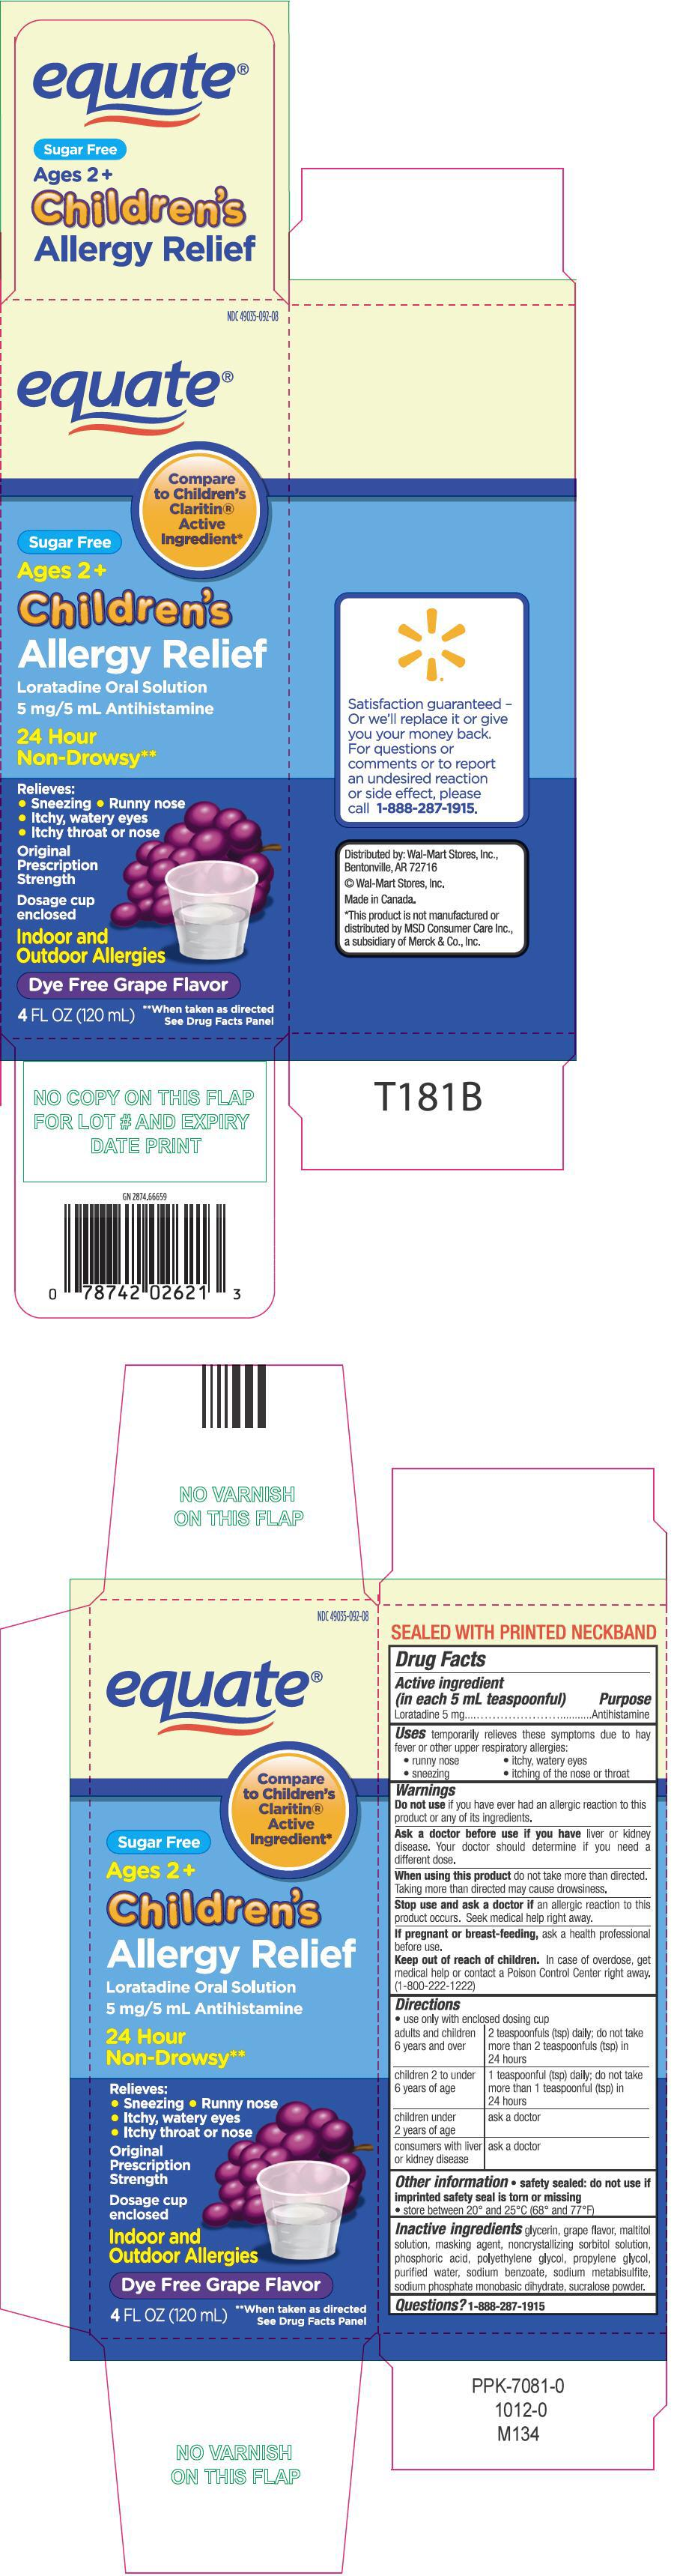 Equate Childrens Allergy Relief (Loratadine) Solution [Wal-mart Stores Inc]